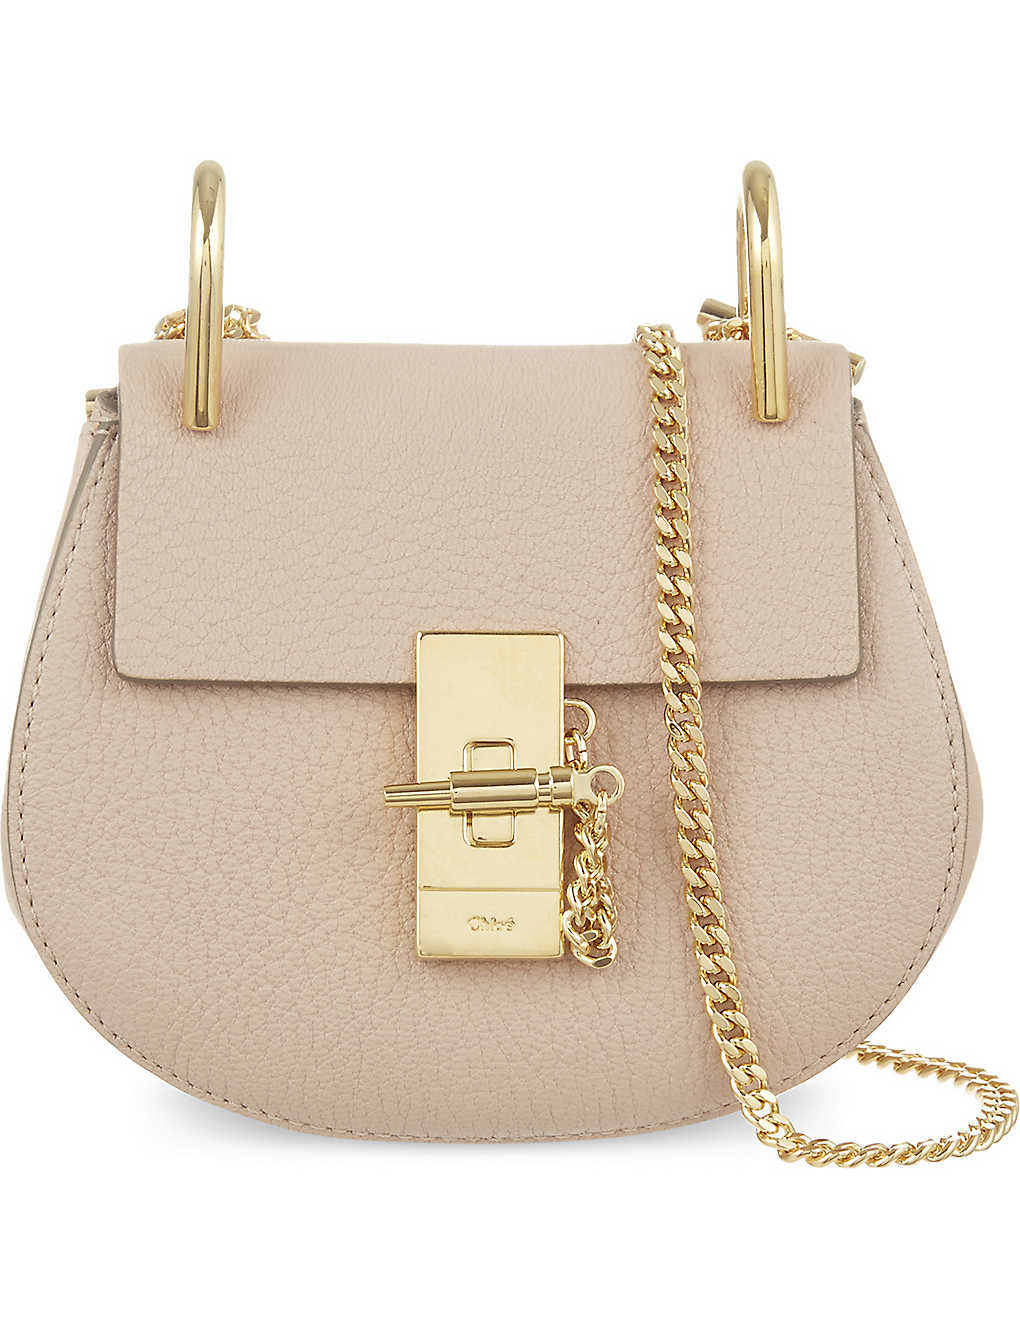 chloe drew bag mini pink selfridges